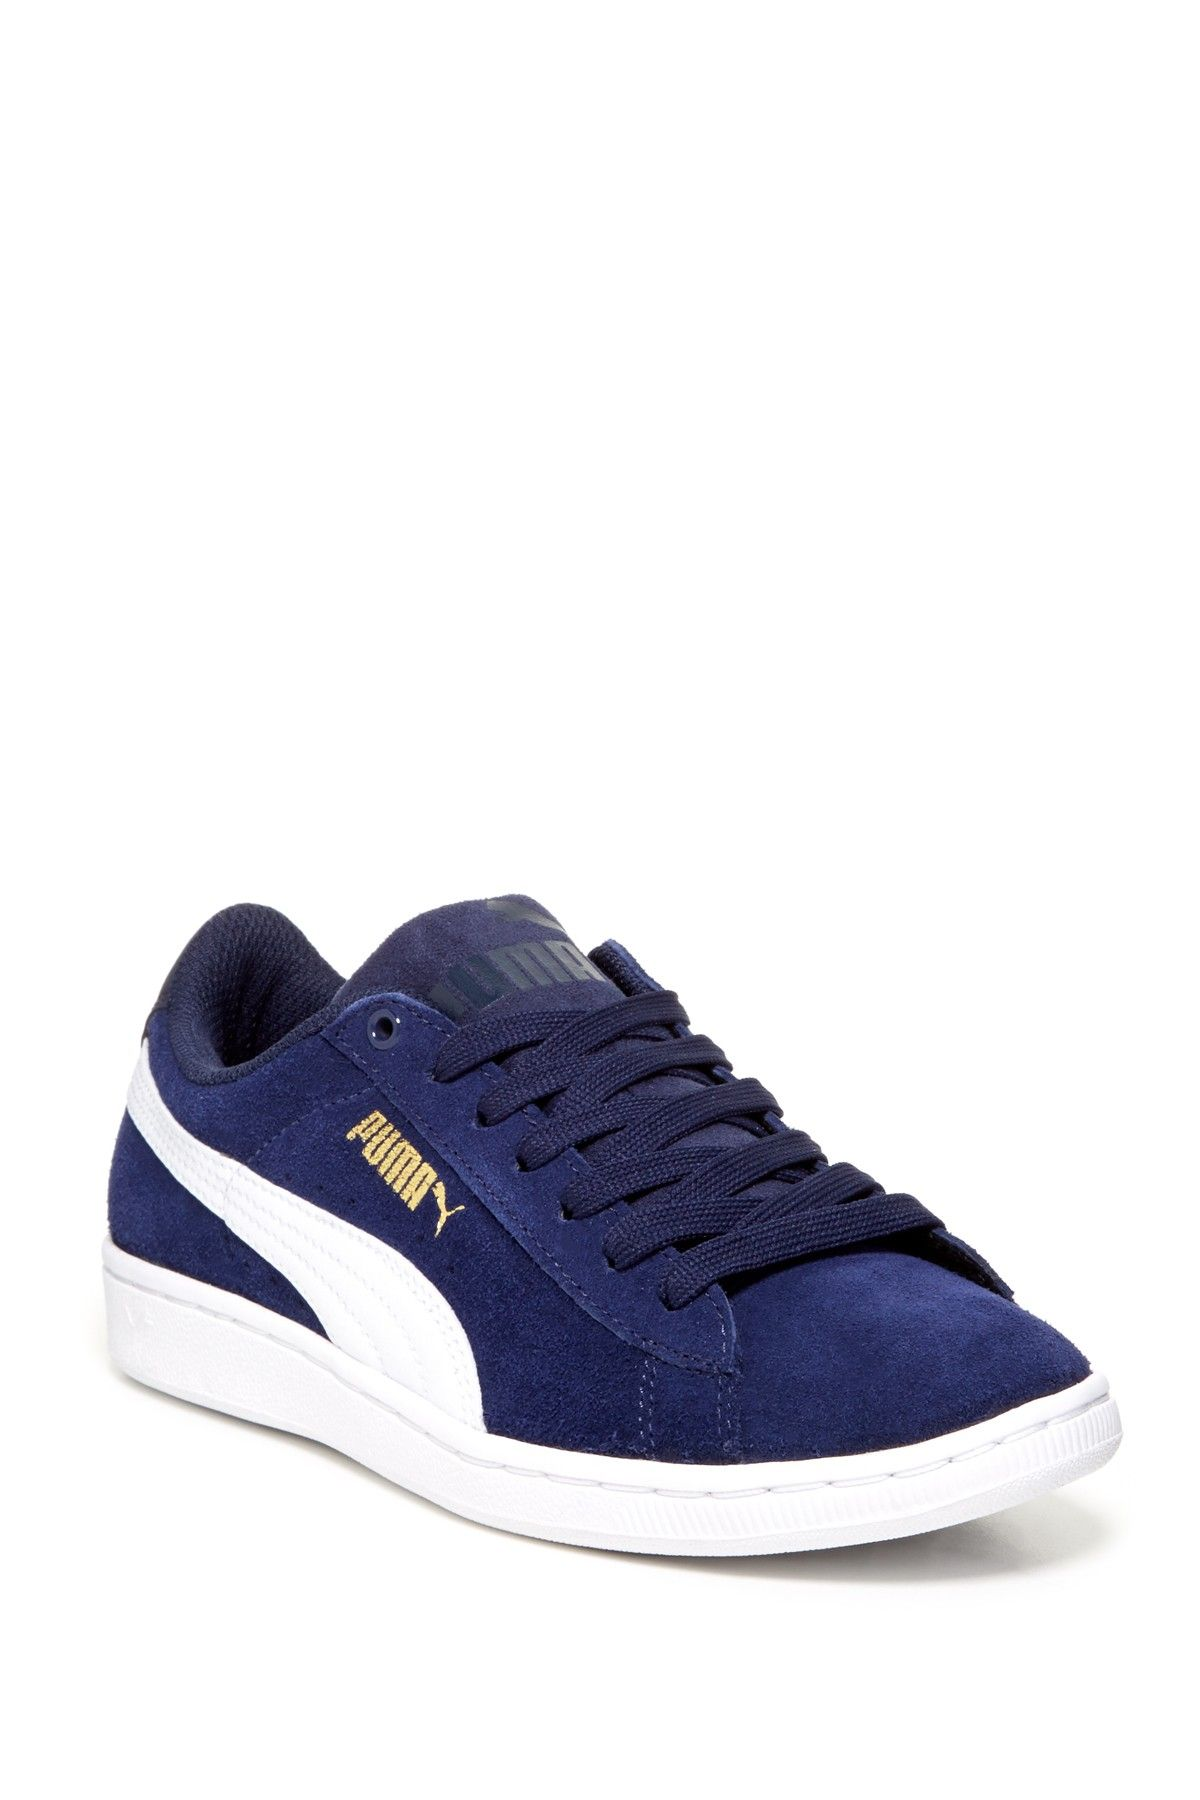 PUMA Vikky Suede Sneaker by PUMA on @nordstrom_rack